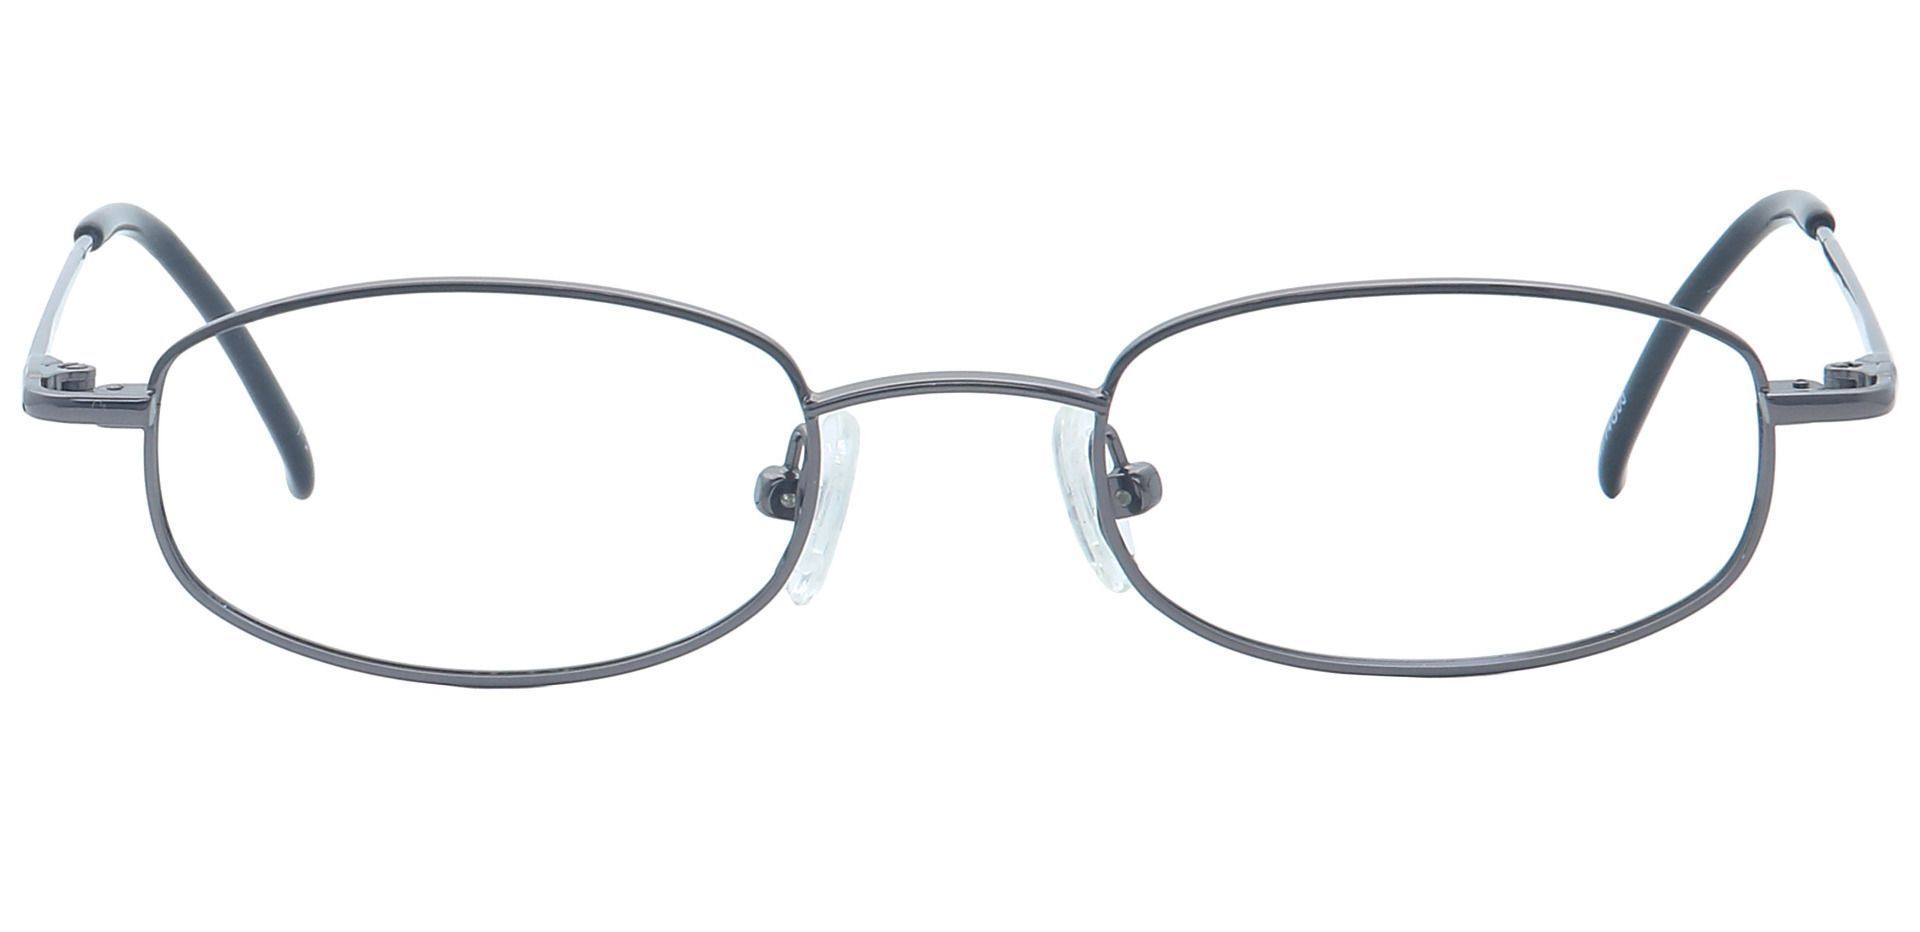 Orton Oval Non-Rx Glasses - Gray